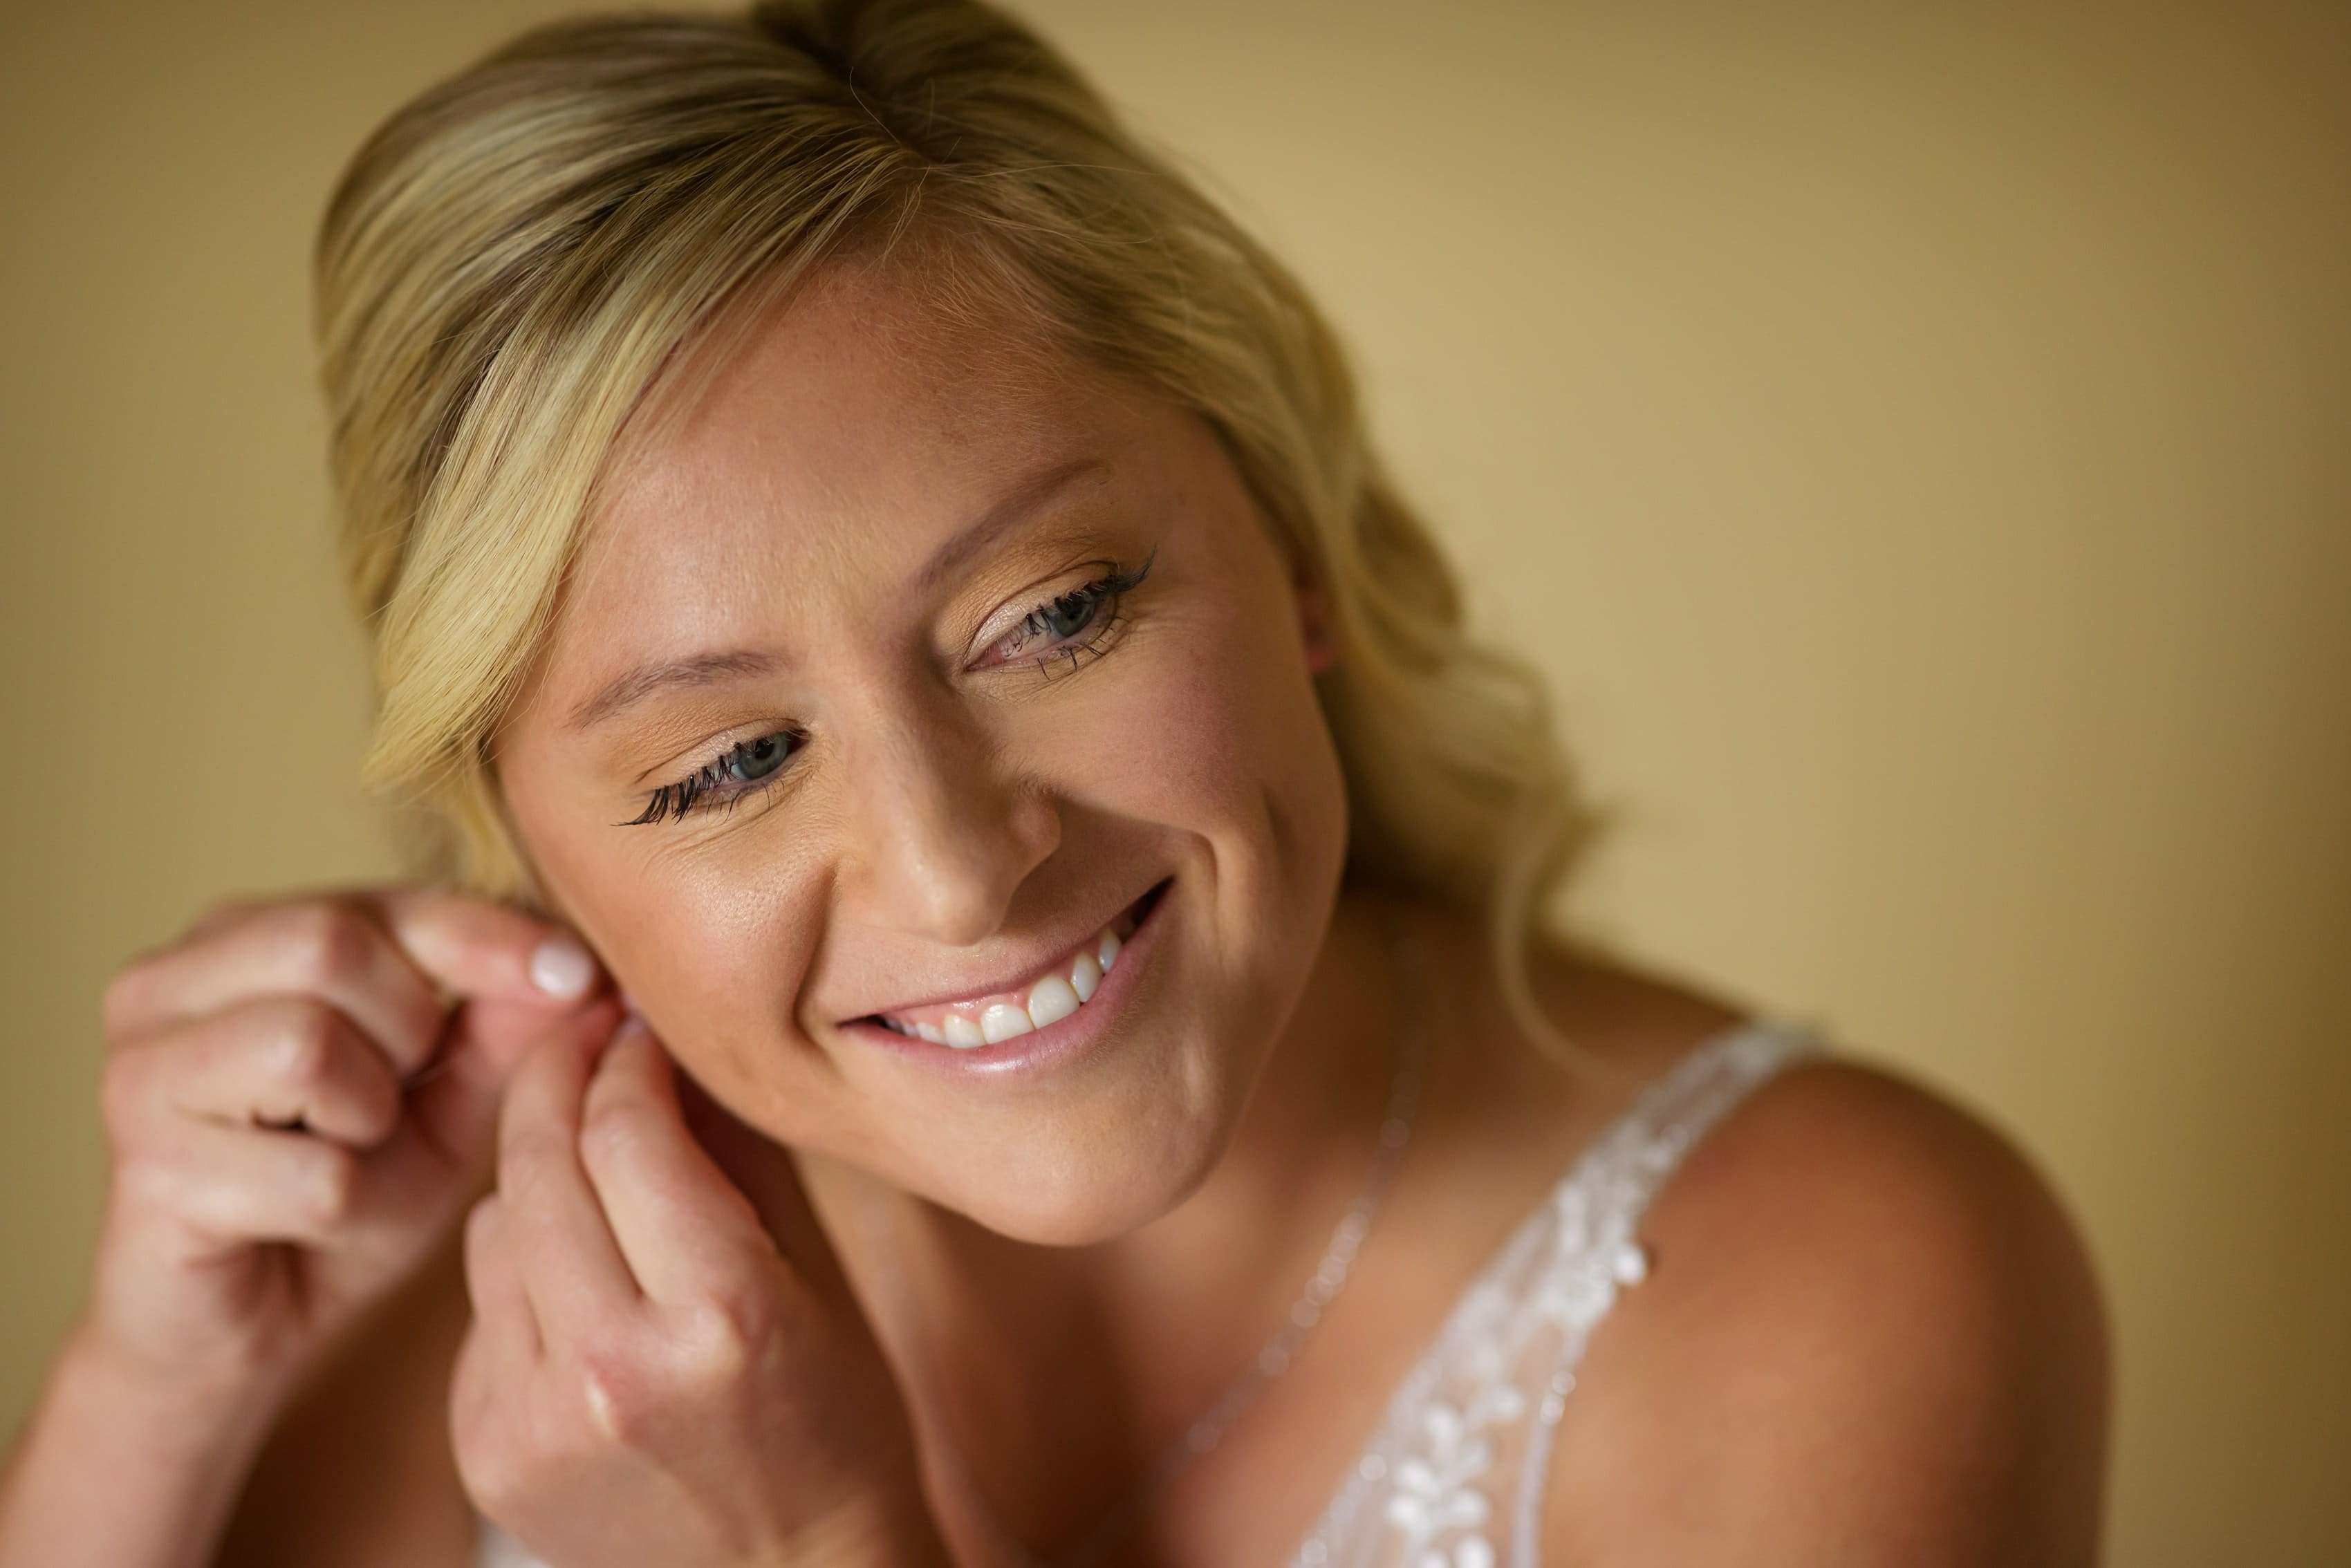 bride smiles while putting earrings in getting ready for wedding